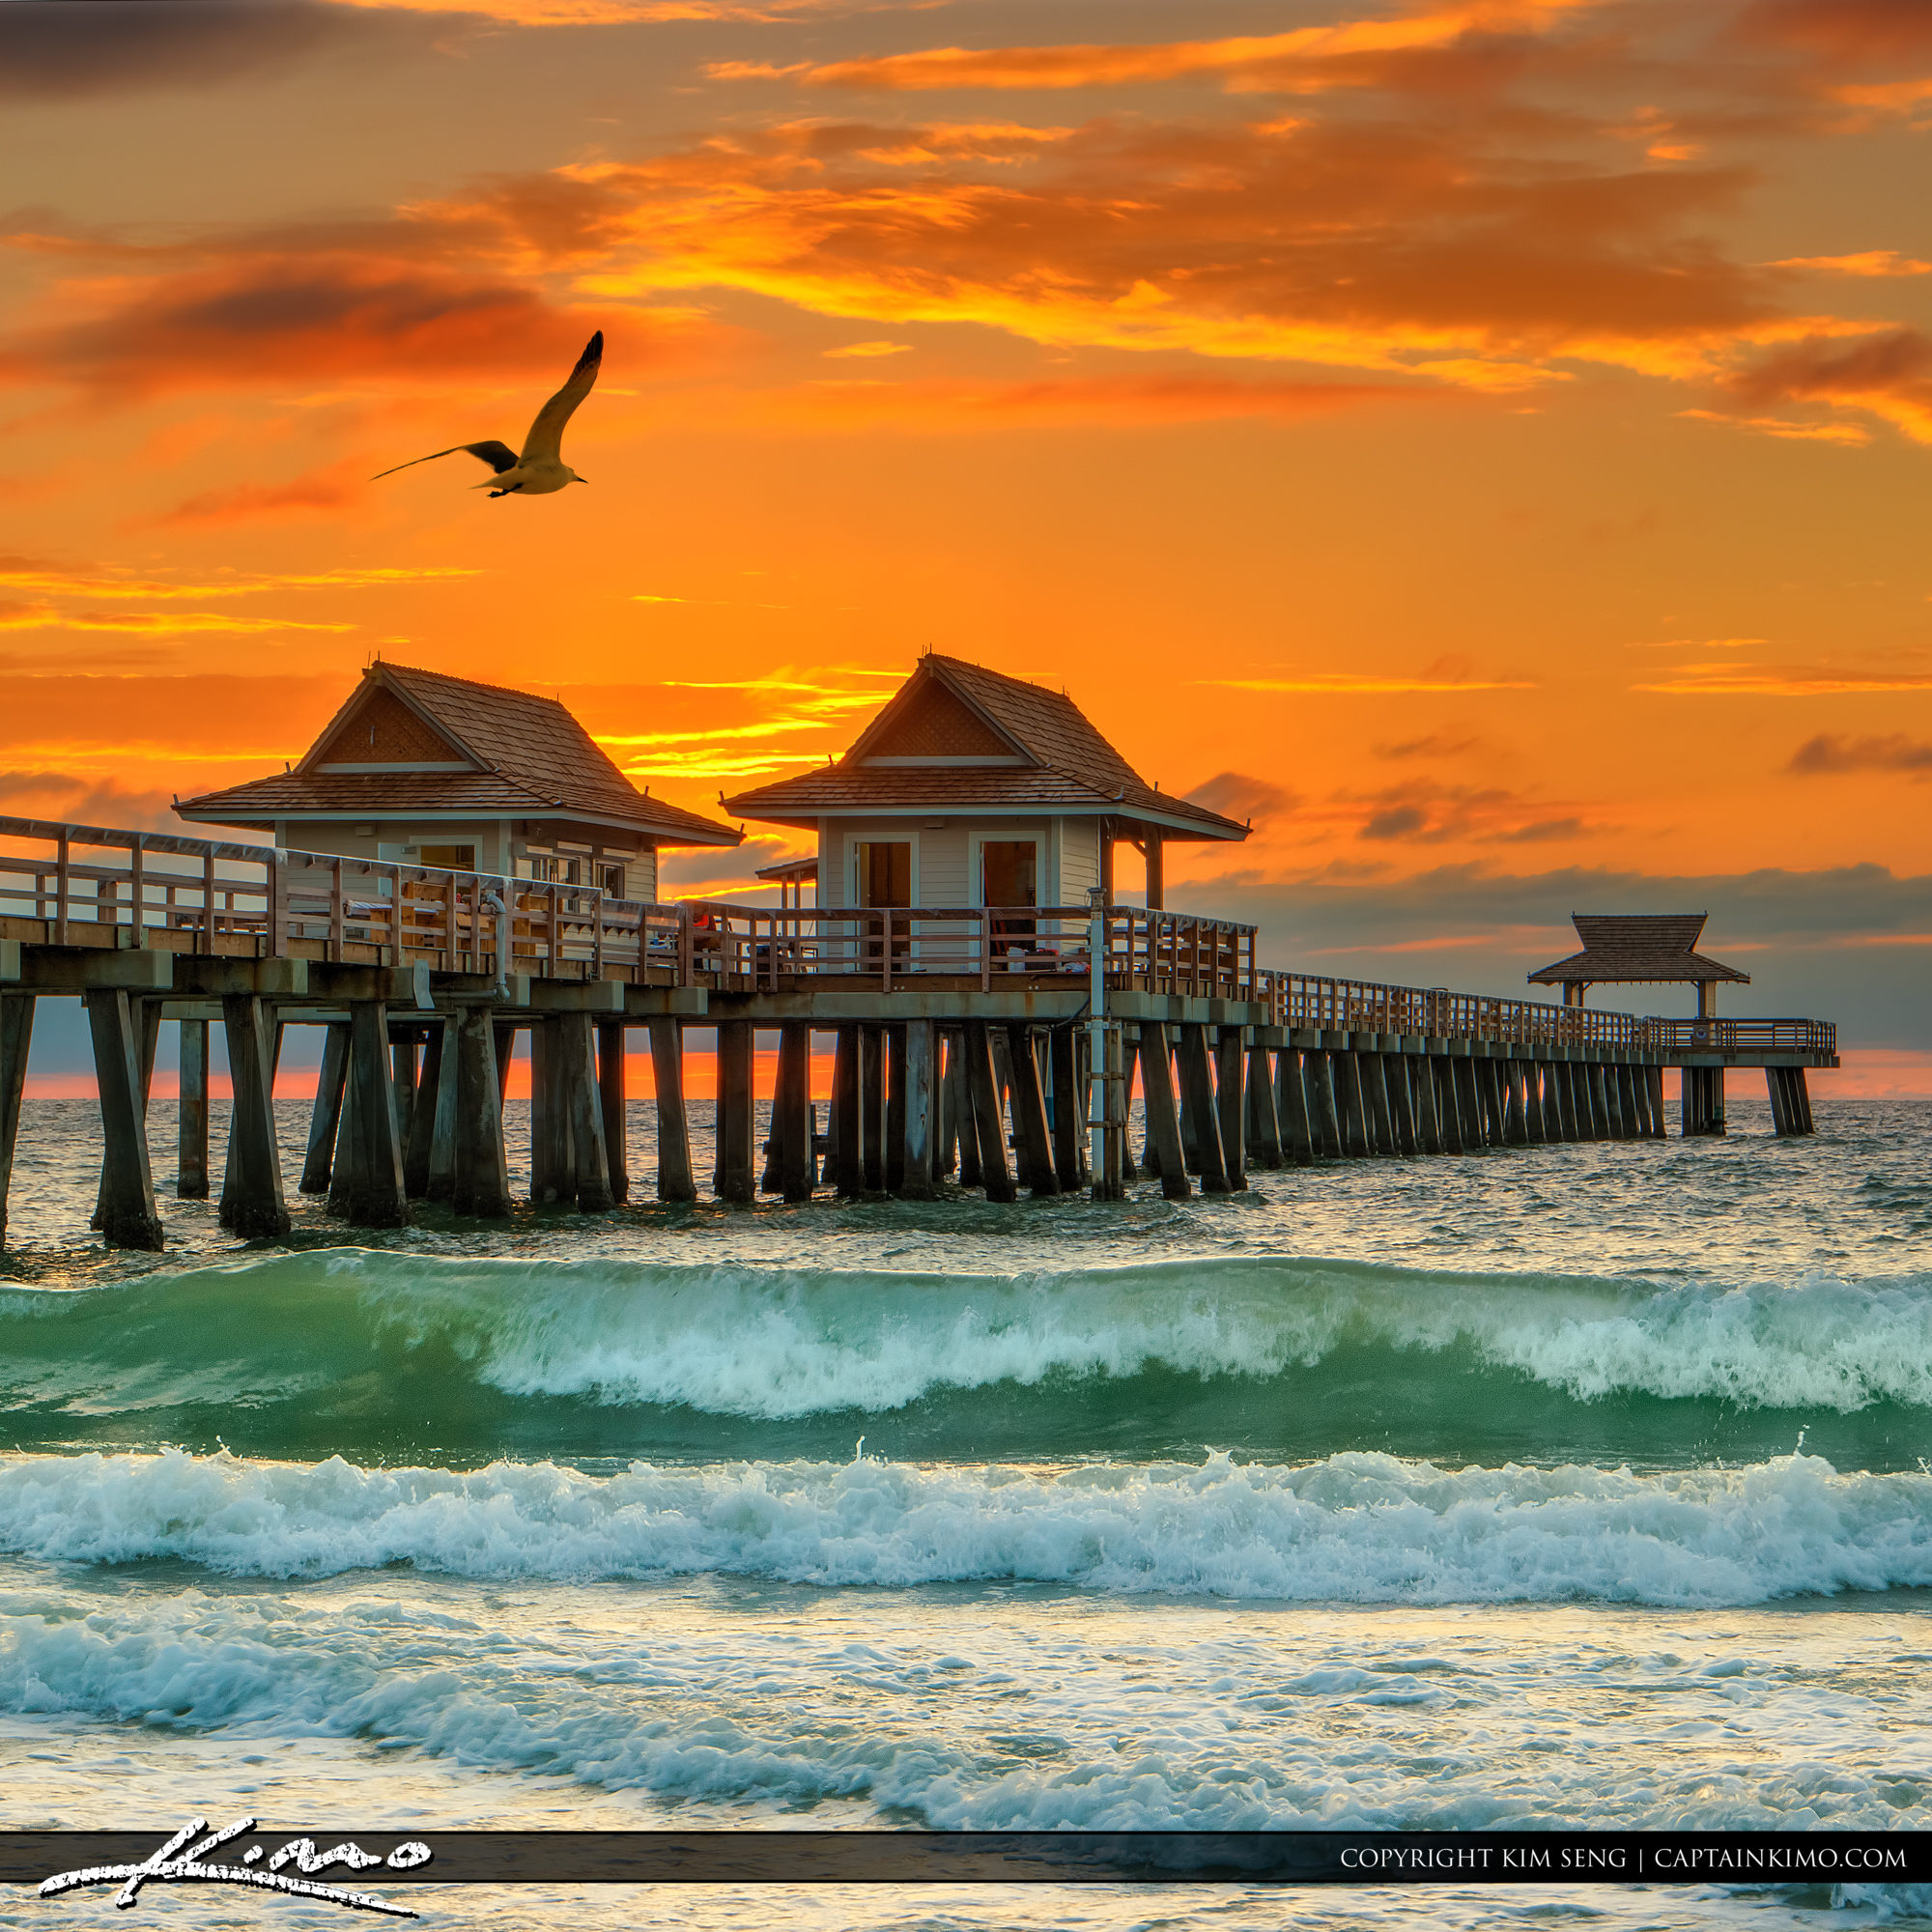 Landscape Lighting Naples Fl: Seagull Flying Over Naples Pier At Sunset